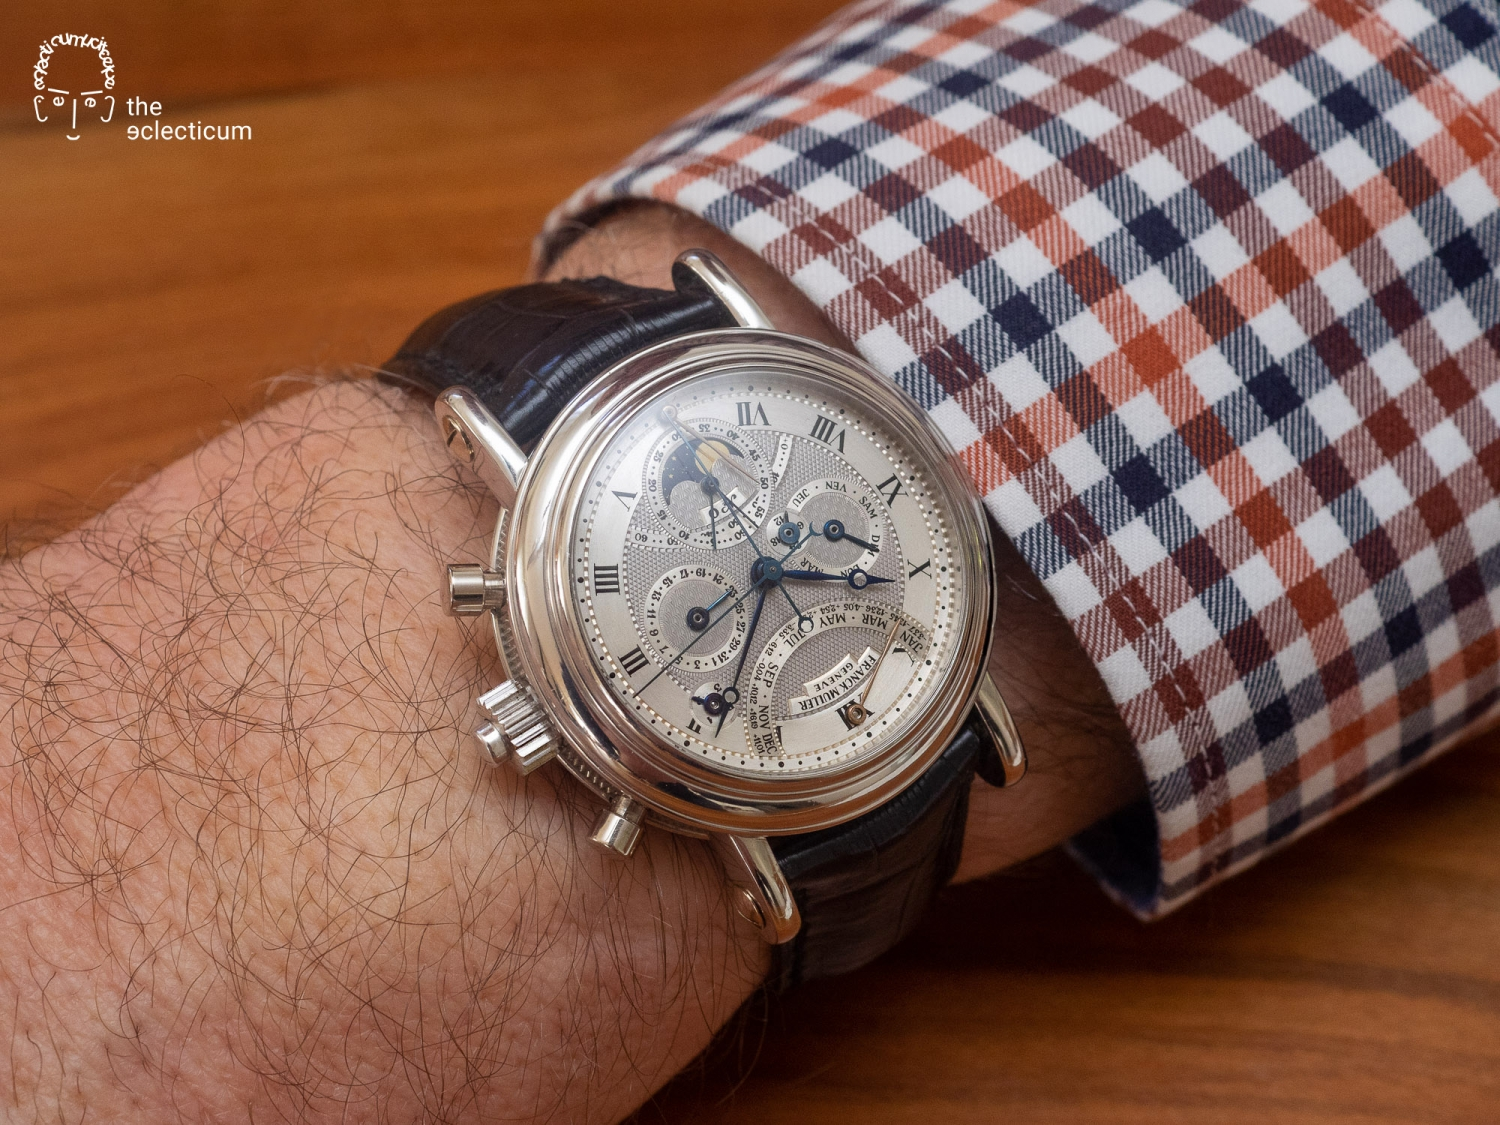 Paul Gerber master watchmaker AHCI manufacture Superbia Humanitatis grand complication minute repeater Sonnerie flyback split seconds rattrapante chronograph flying tourbillon perpetual calendar thermometer